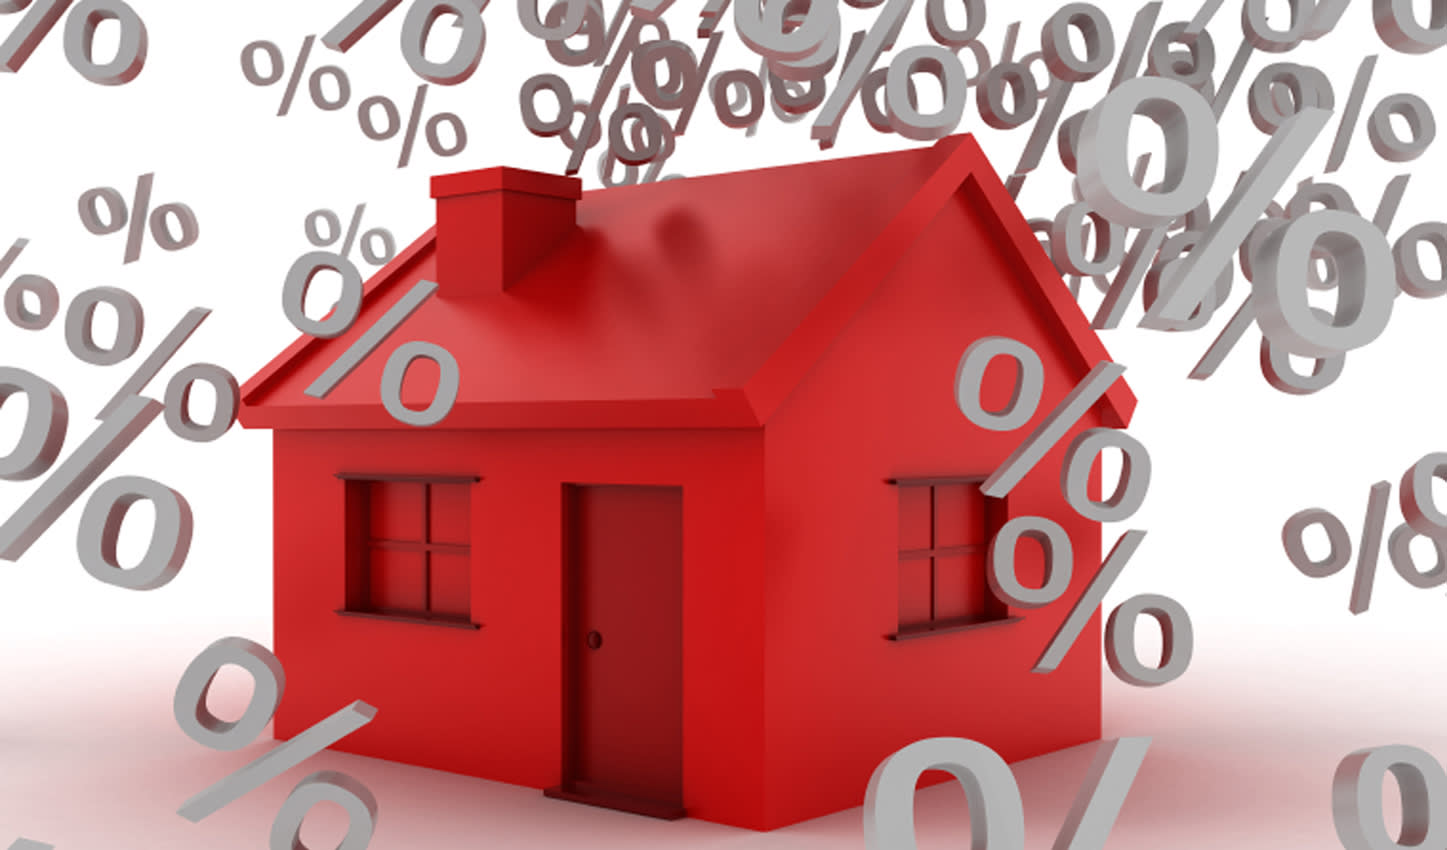 Two-year fixed mortgage rates dip